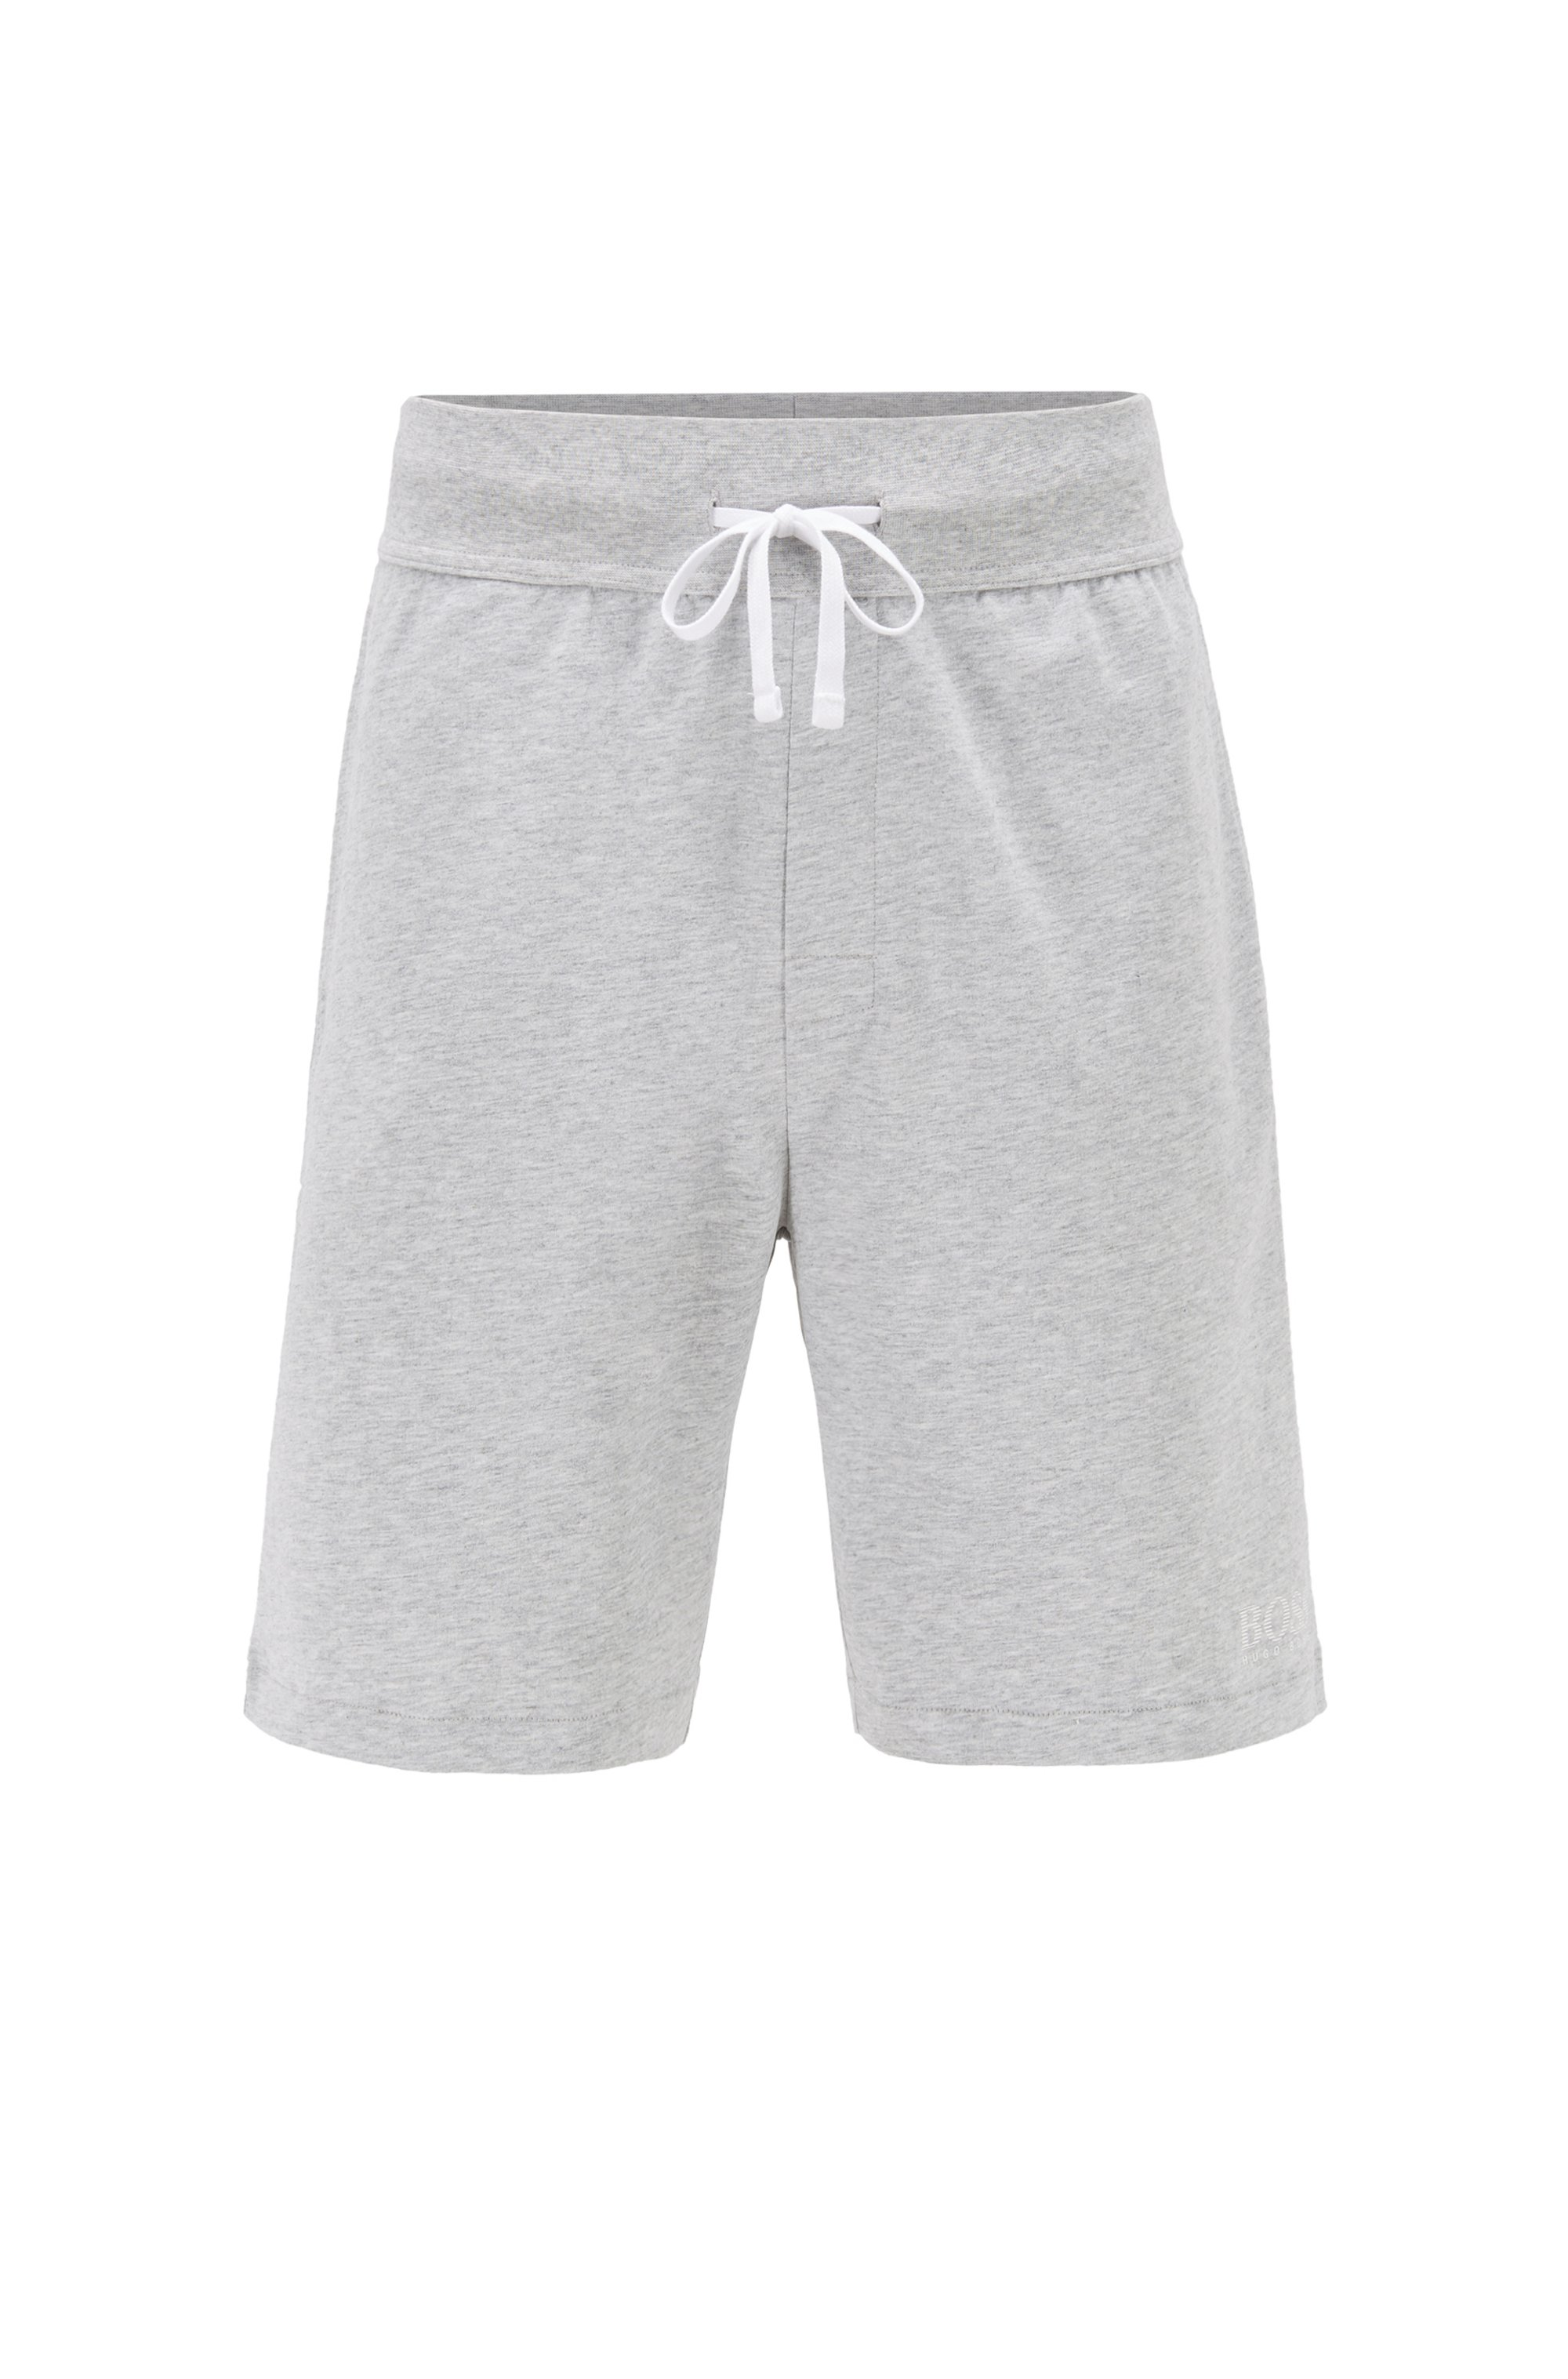 Loungewear shorts in cotton with contrast tape and logo, Grey